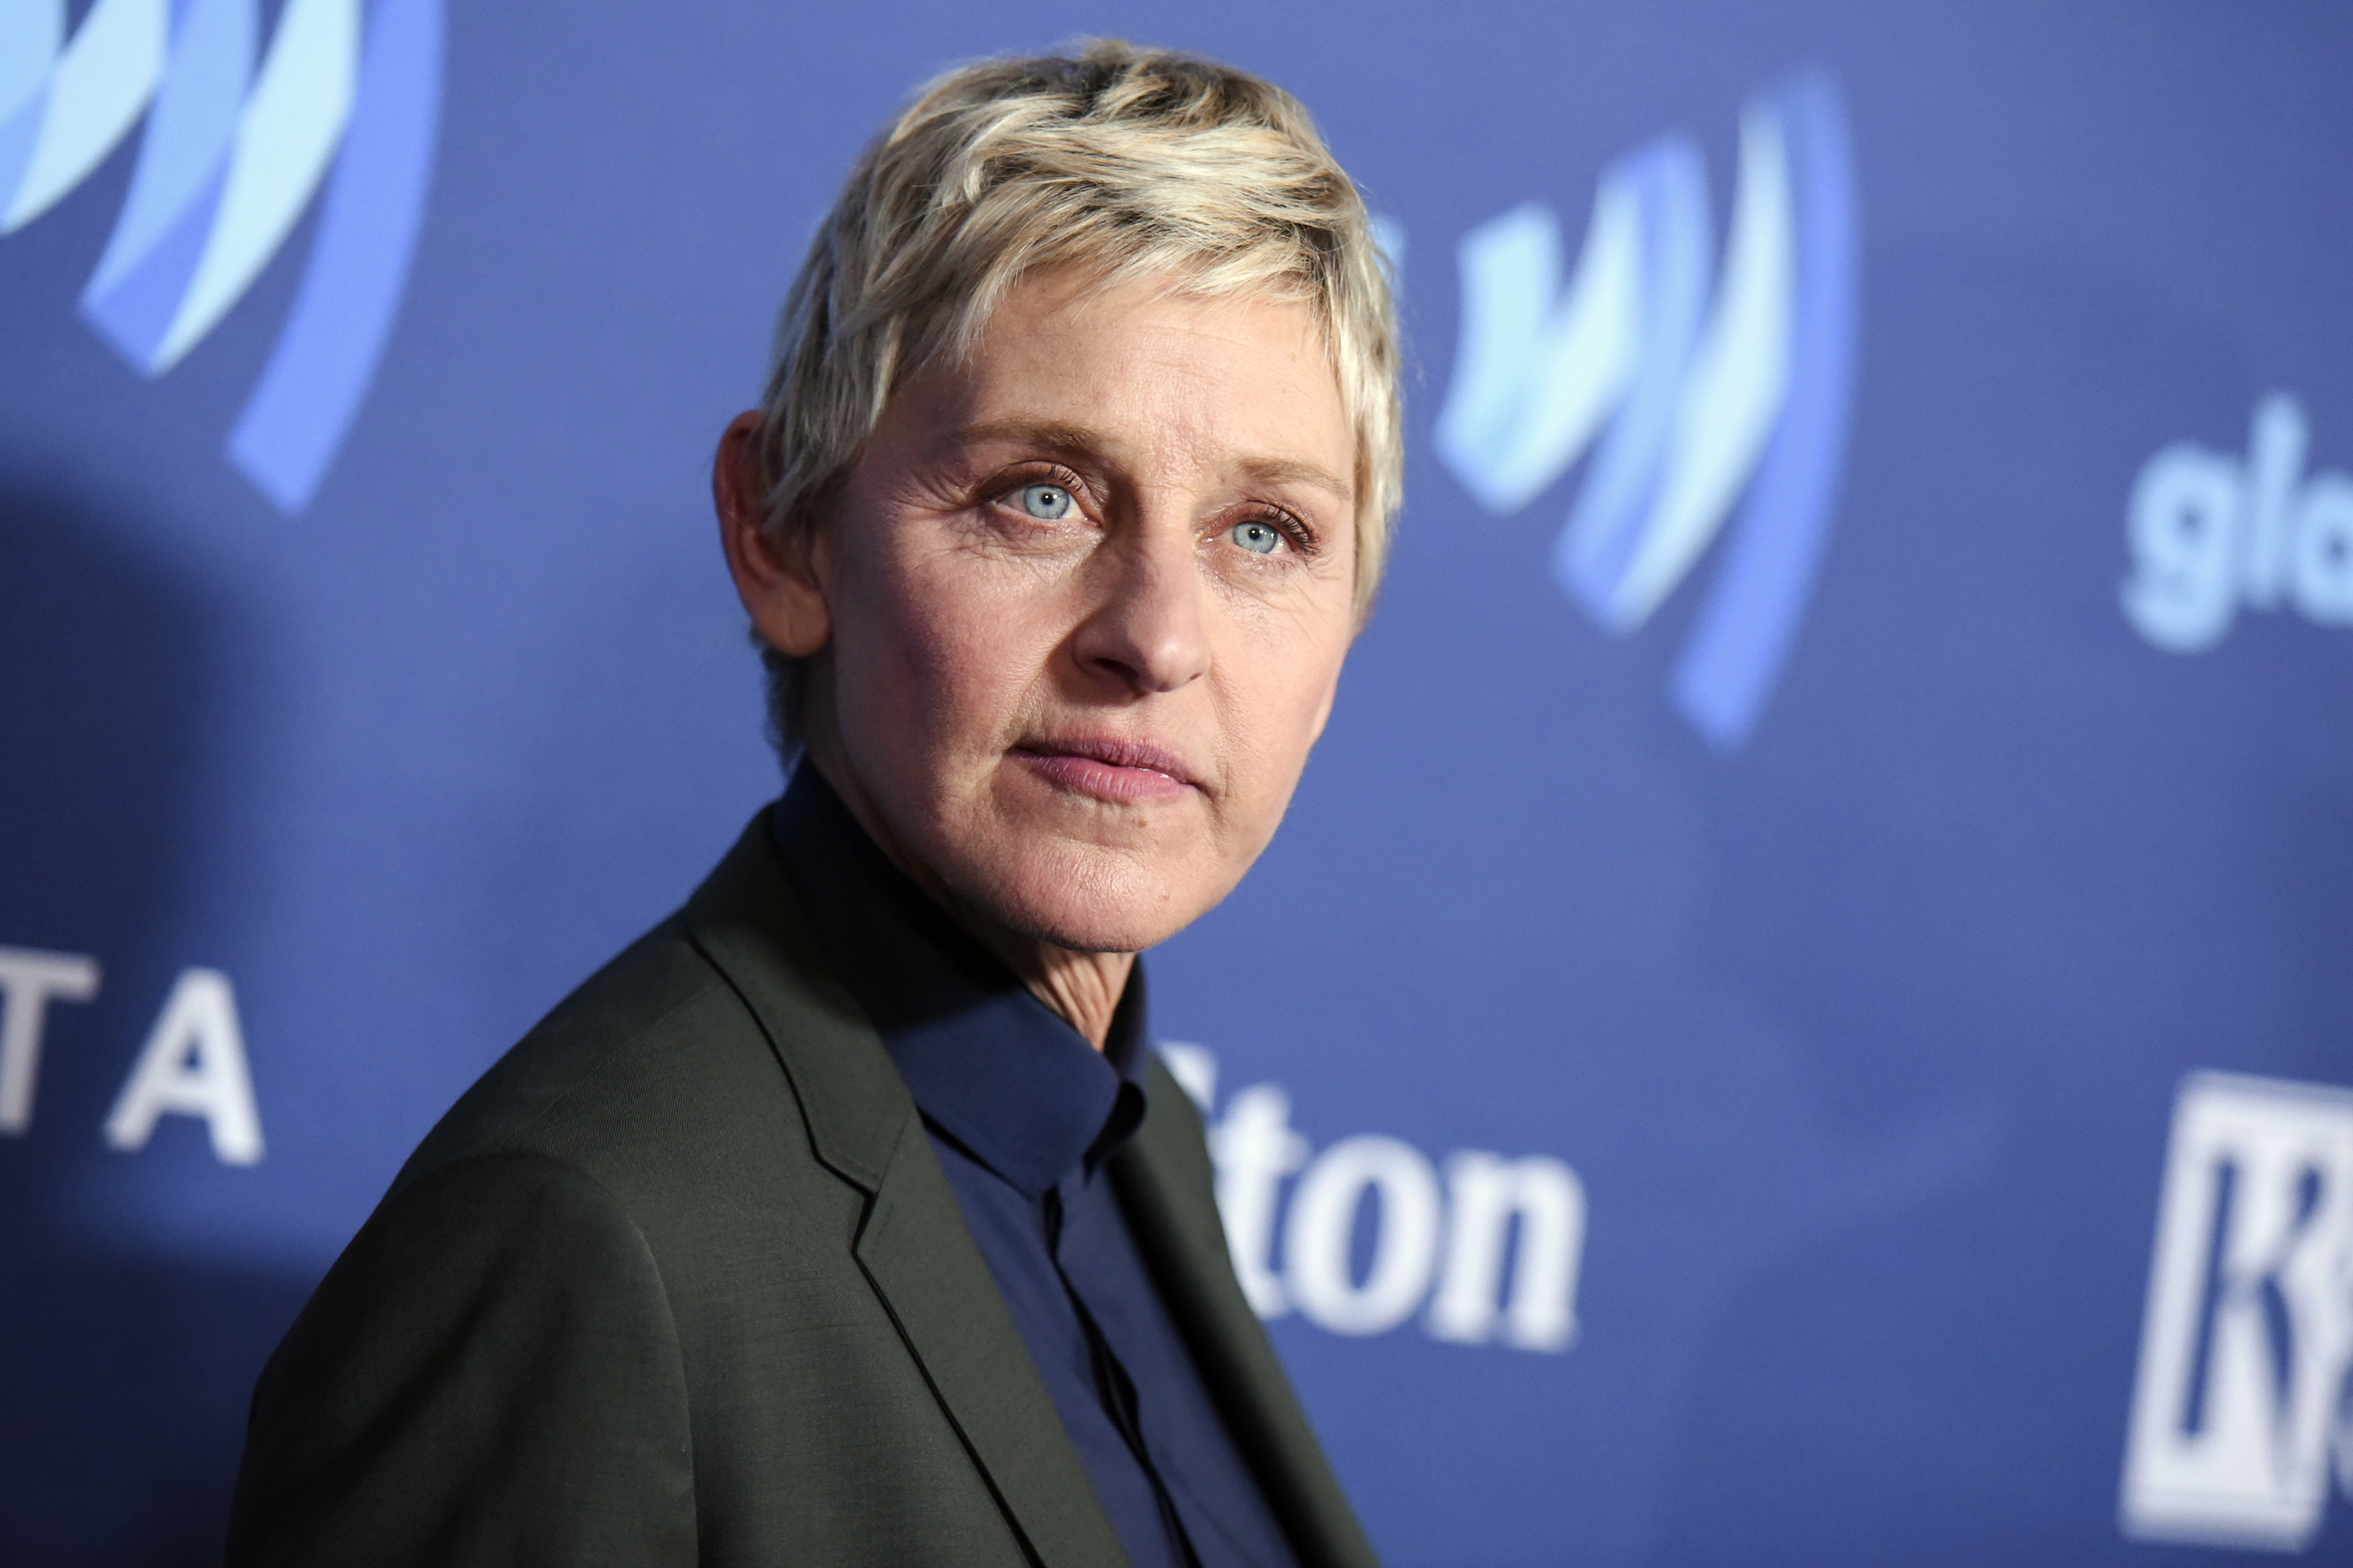 Ellen DeGeneres arrives at the 26th Annual GLAAD Media Awards in Beverly Hills, Calif., on March 21, 2015.